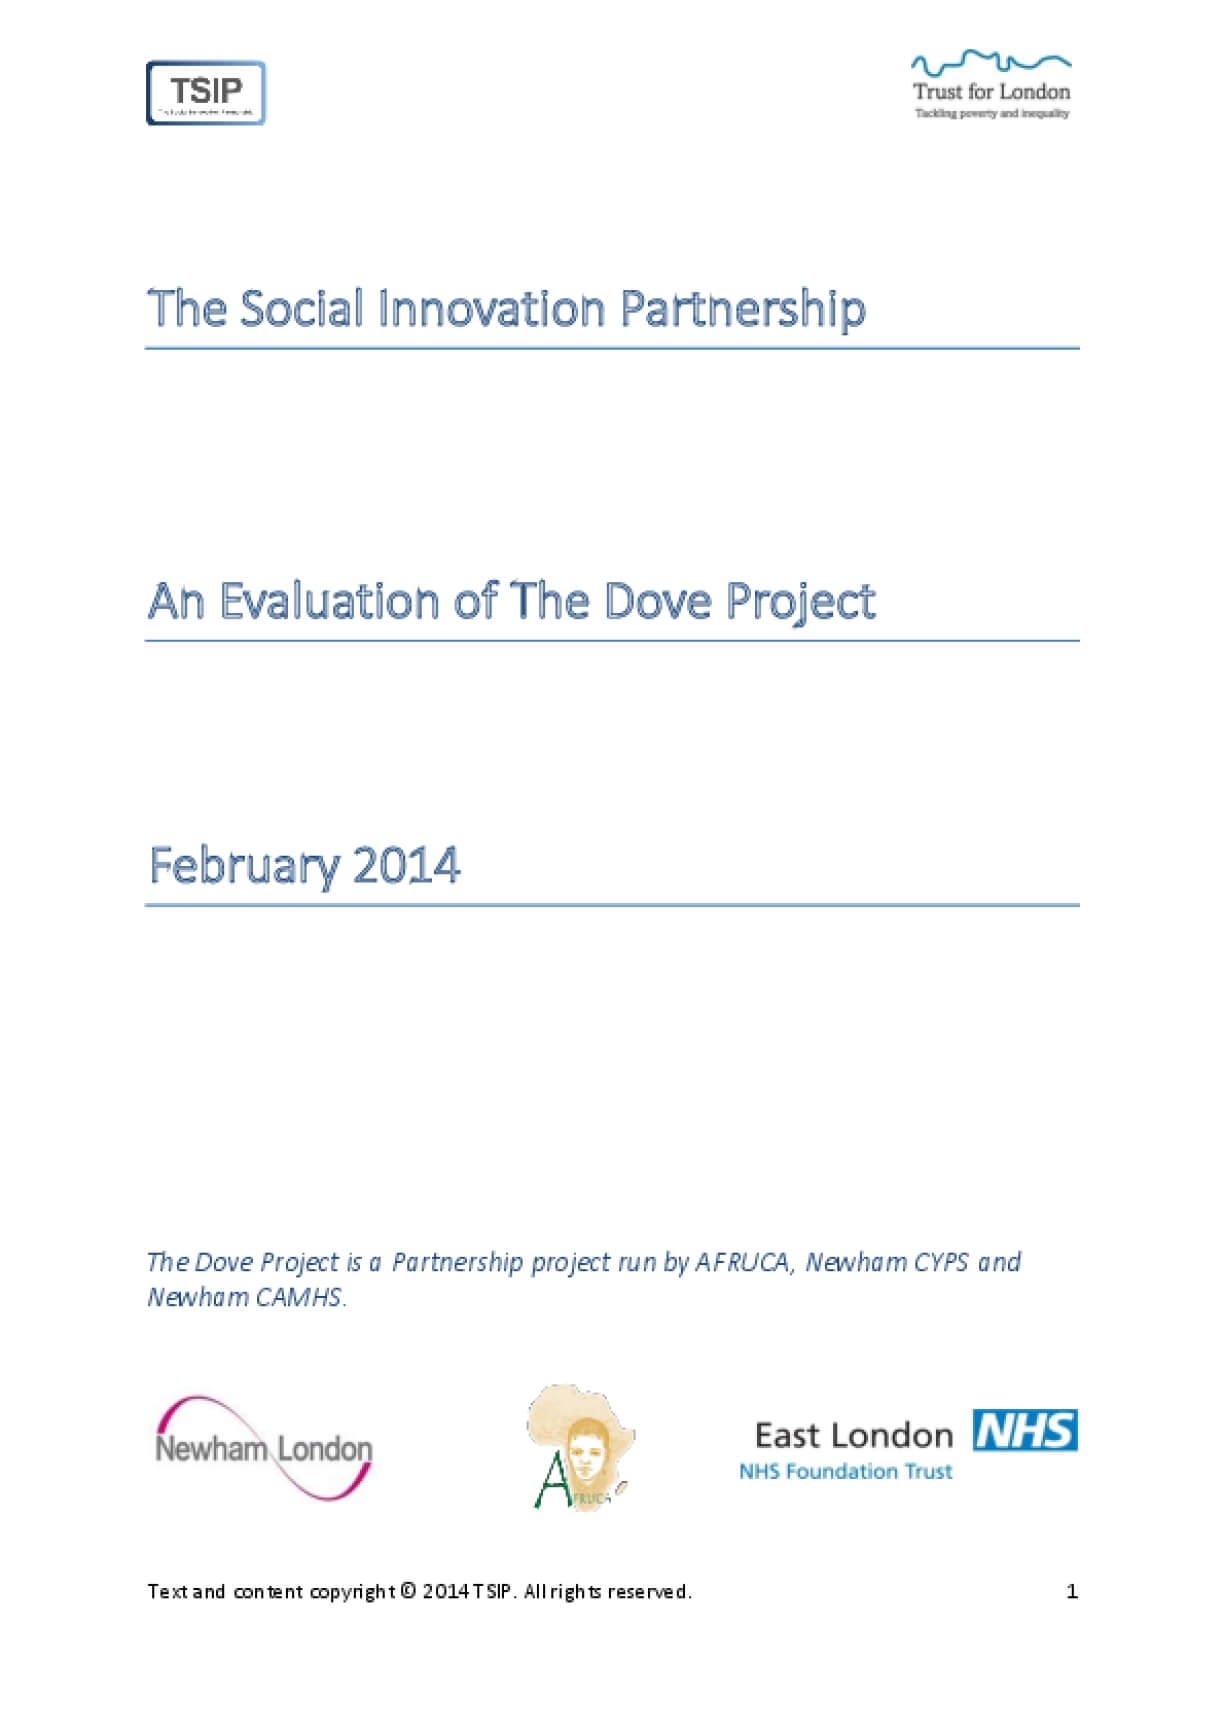 An Evaluation of The Dove Project